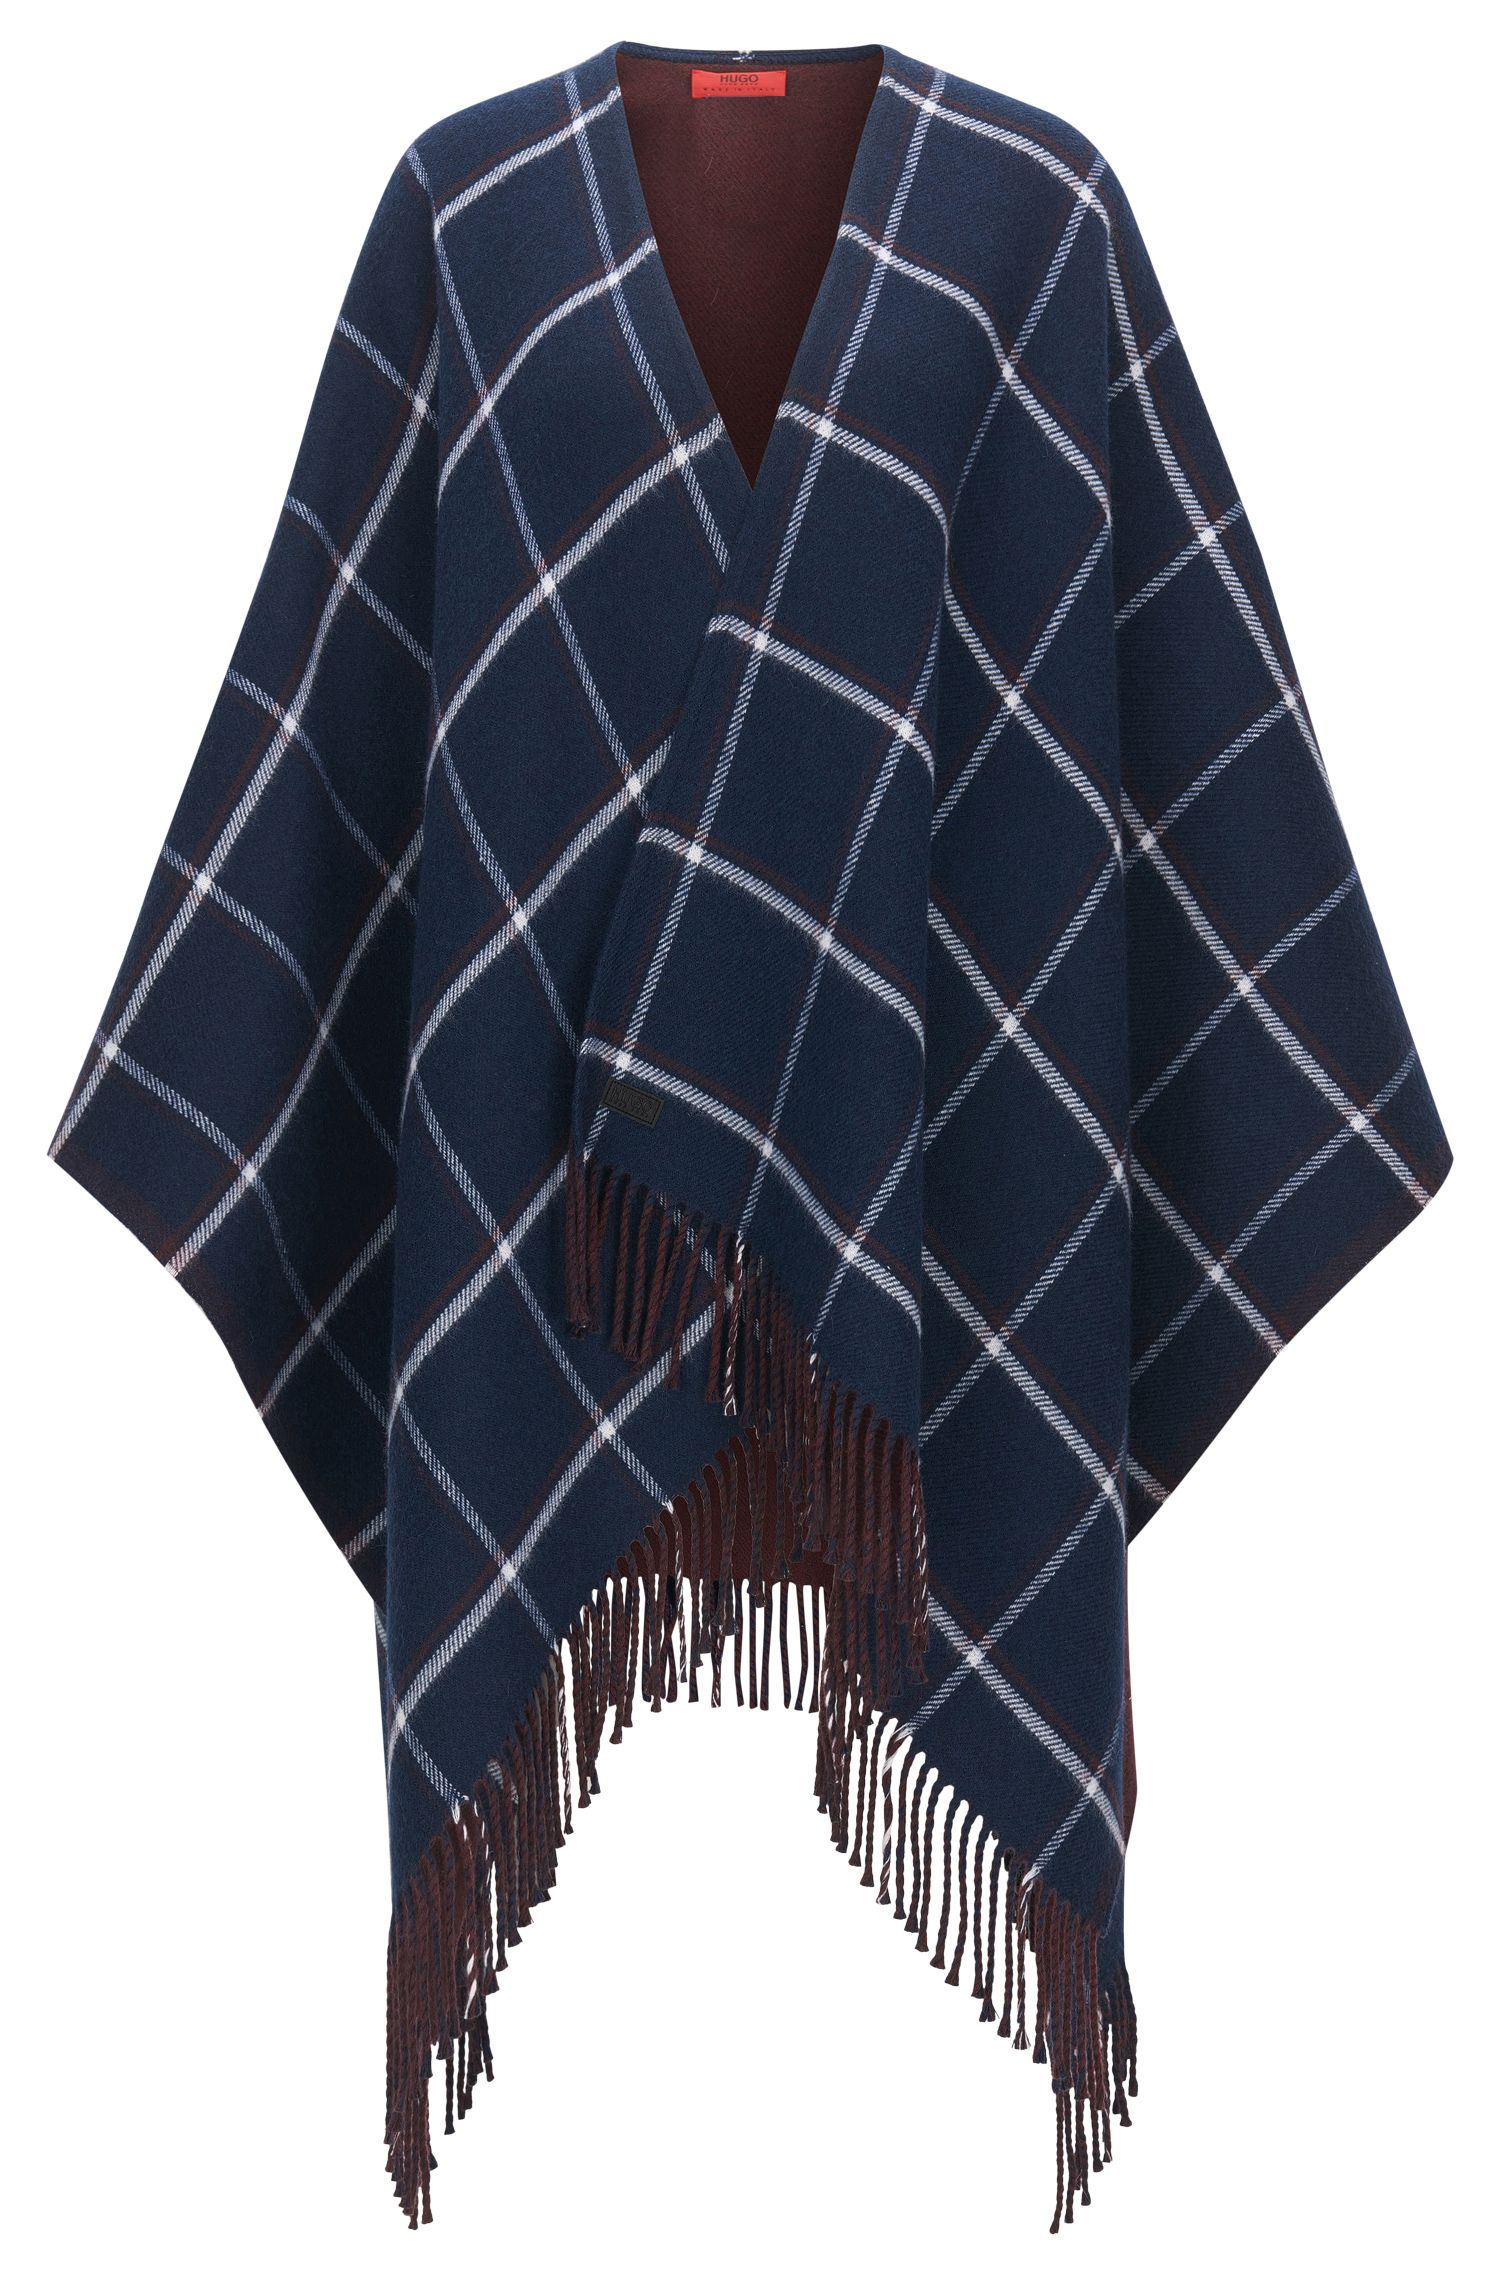 Reversible poncho in double-face fabric